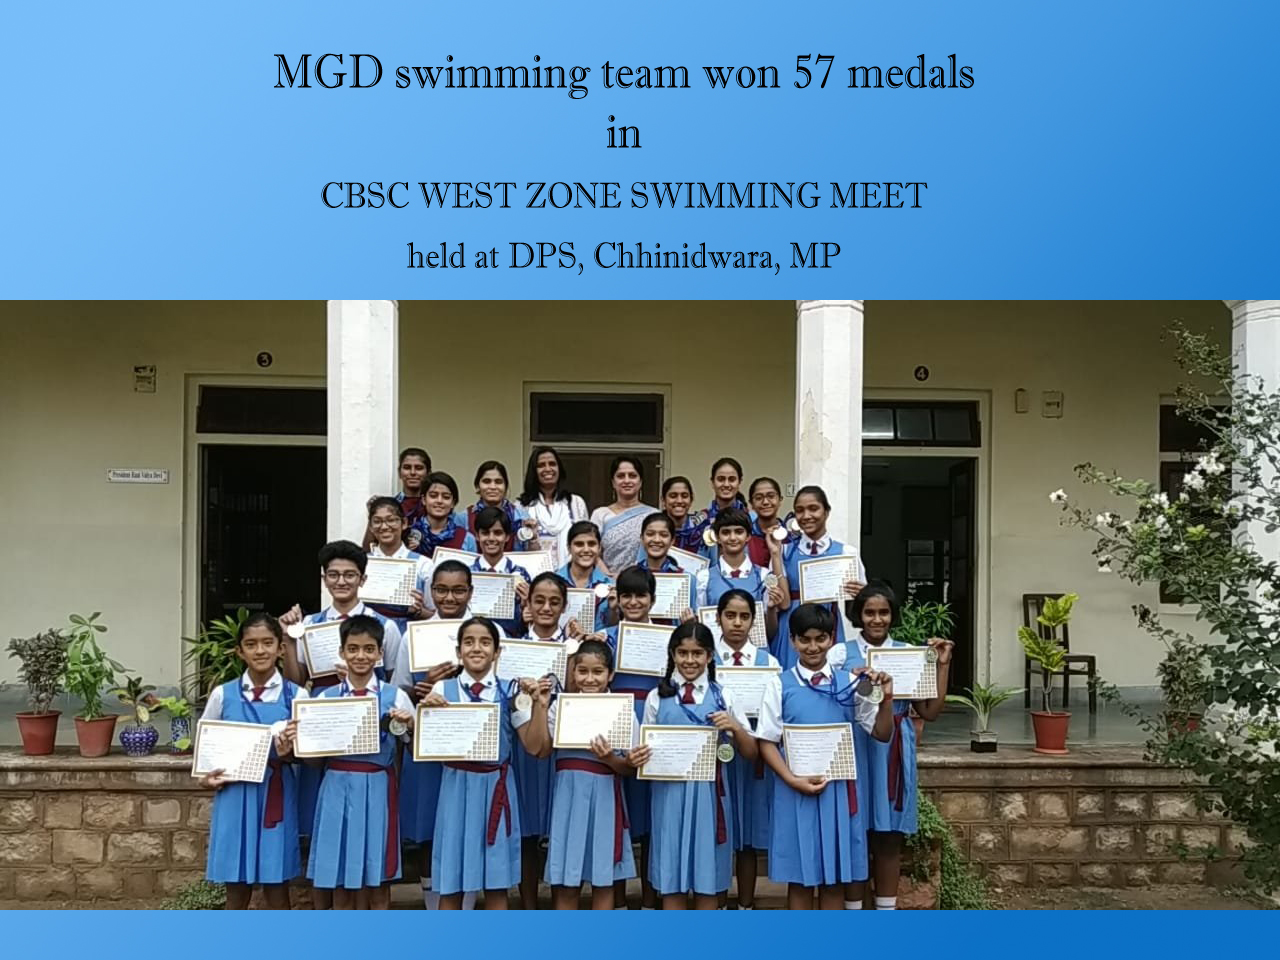 MGD swimming team brought laurels to school by won 57 medals in CBSE West Zone Swimming Meet  held at DPS, Chhindwara, MP